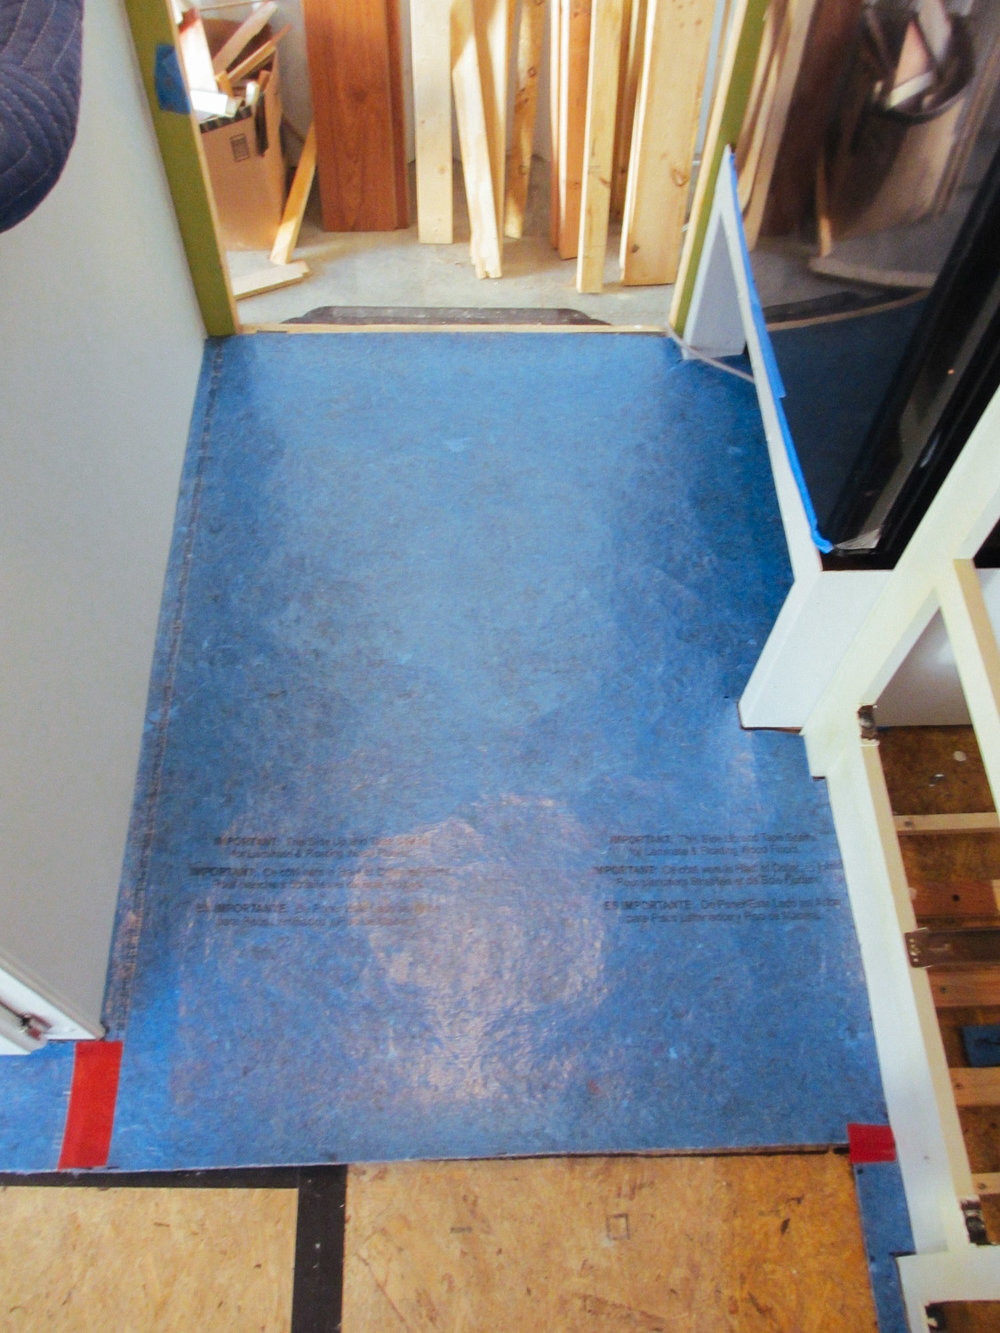 Underlayment was placed on top of the subfloor in preparation for the laminate floor.